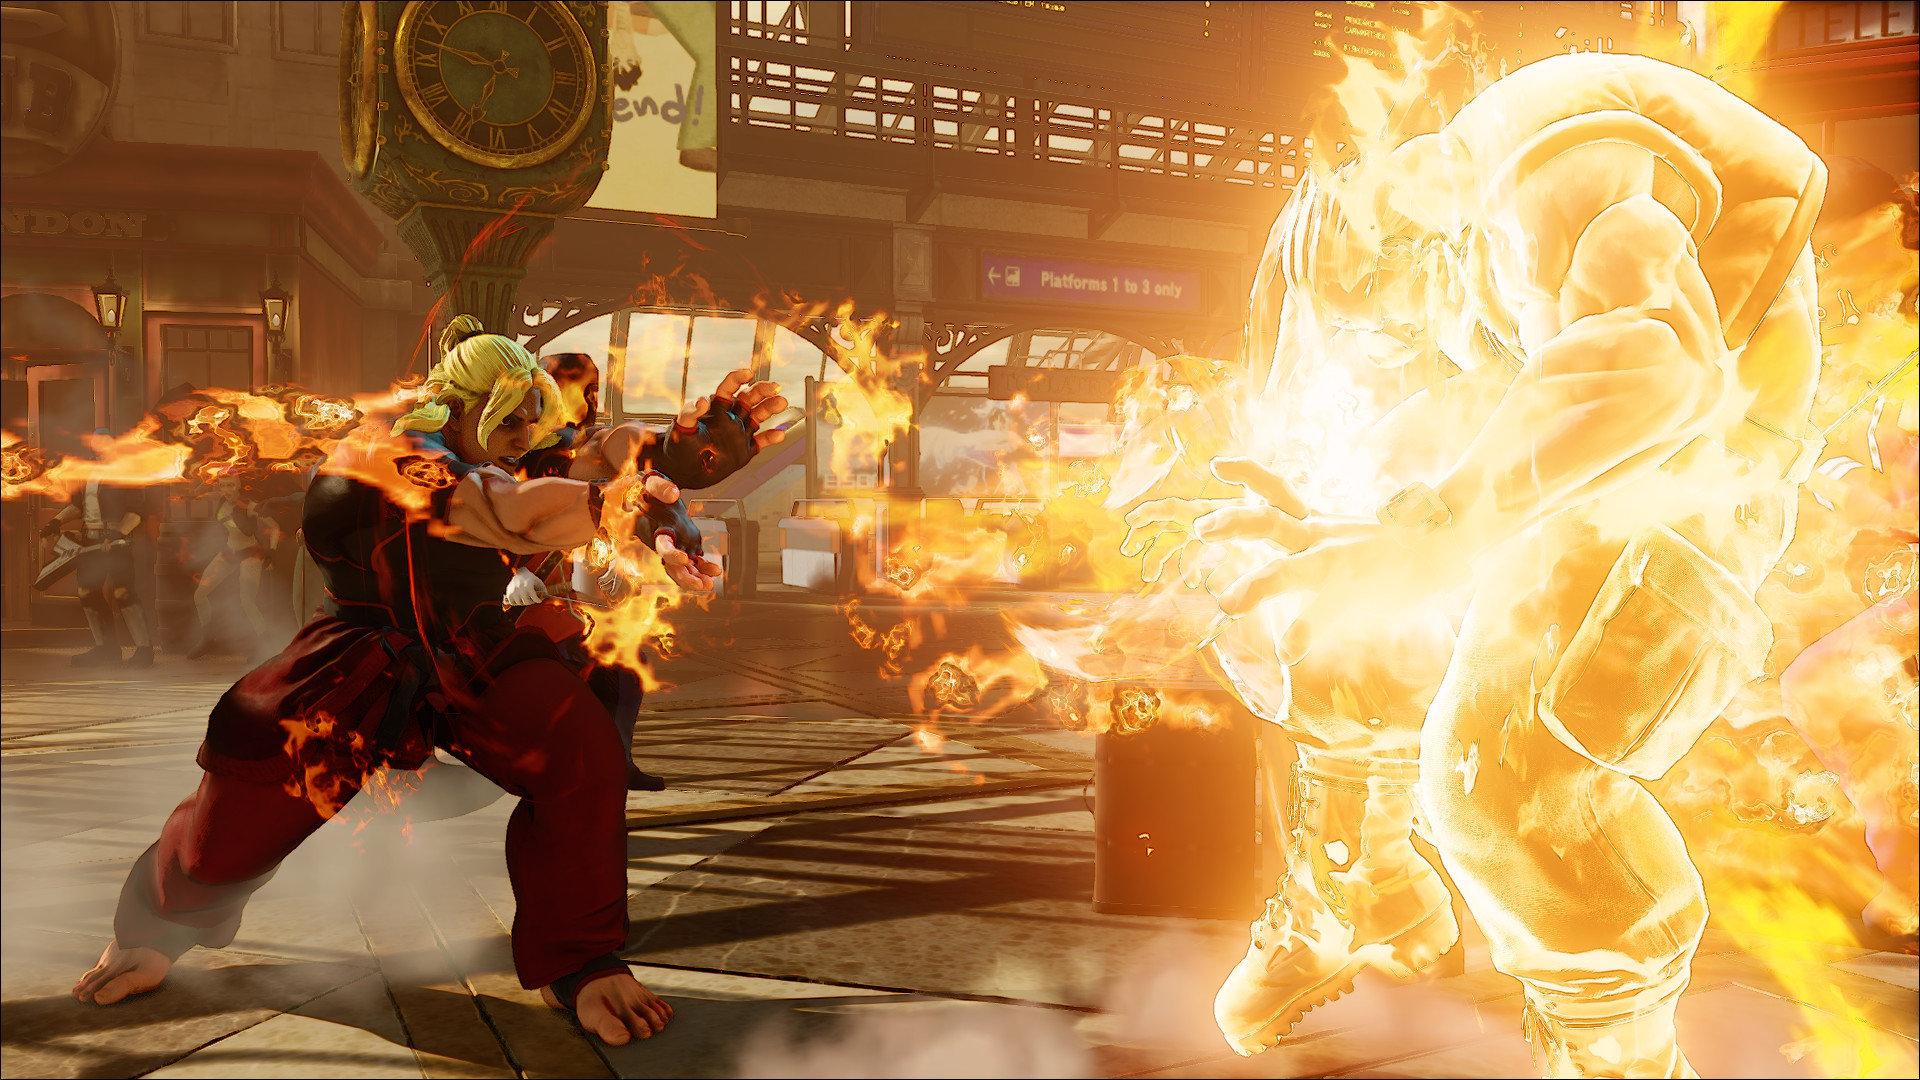 Street Fighter V will be exclusively for PS4 and PC and for more  information, visit https://www.streetfighter.com/